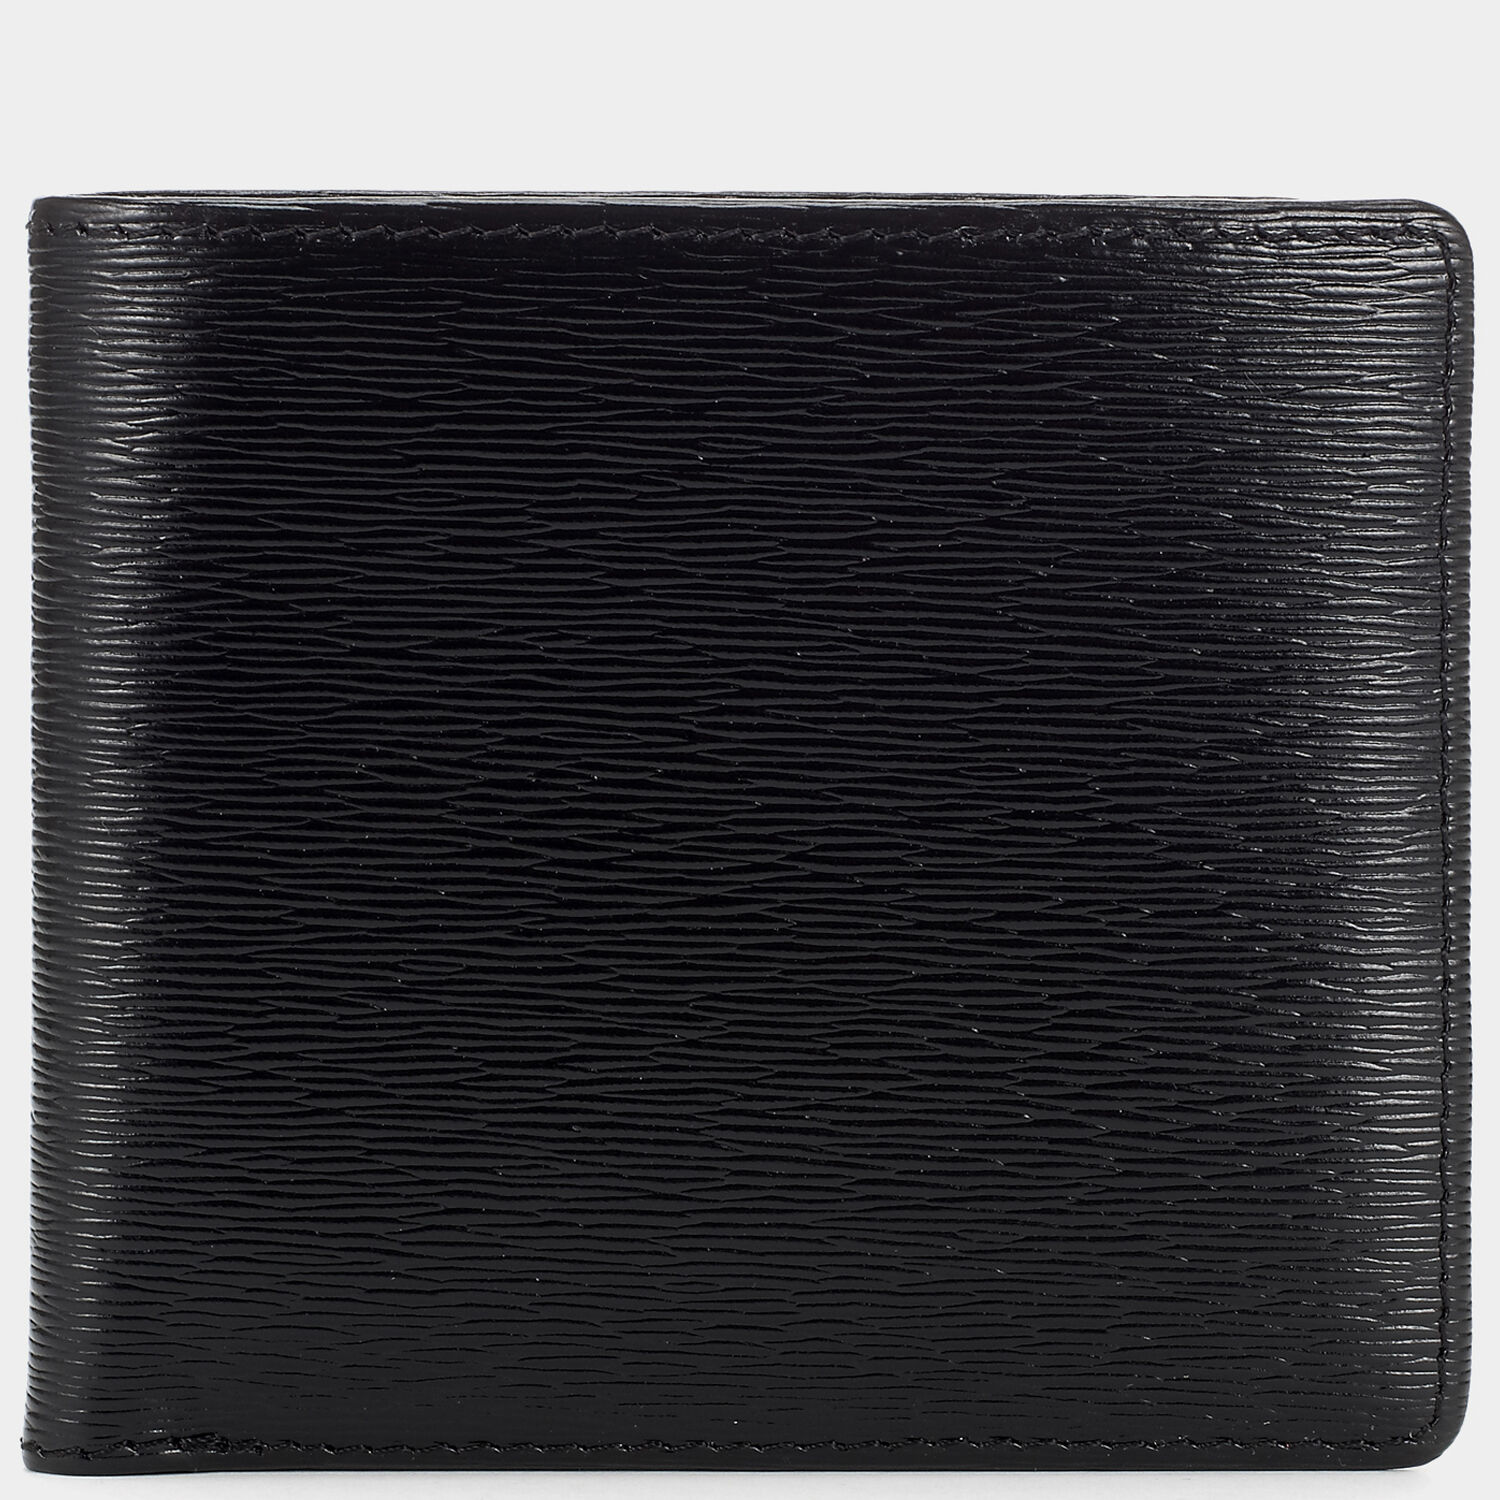 Bespoke Filing Cabinet Wallet by Anya Hindmarch